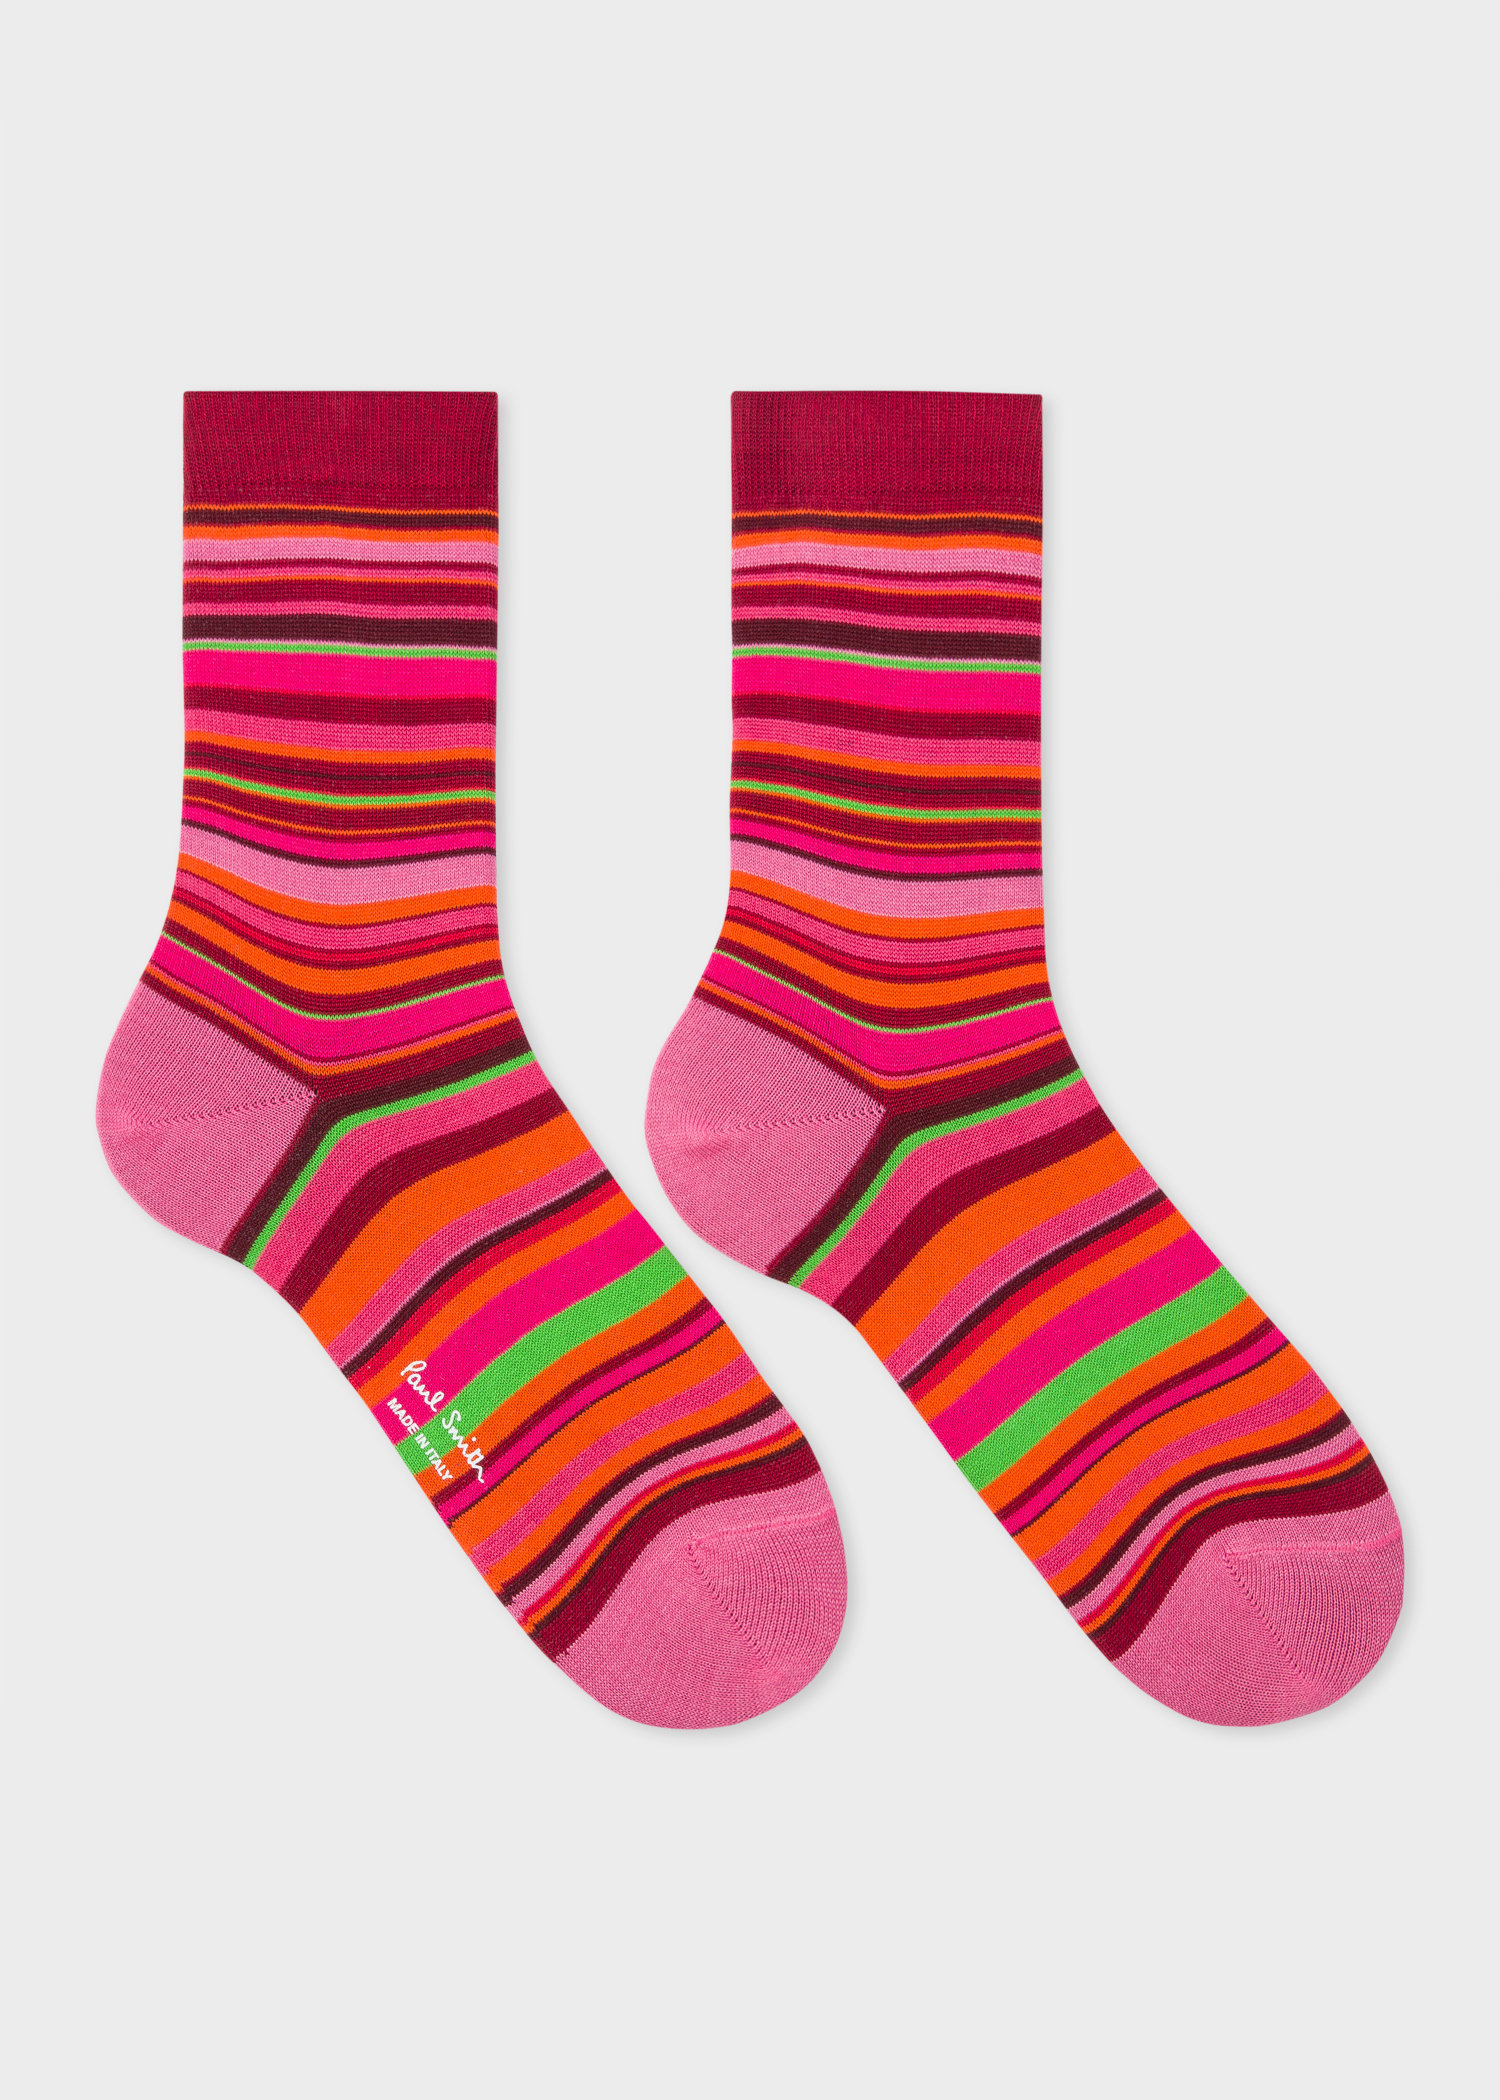 e1e7706f585 Pair View - Women s Burgundy Socks With Multi-Coloured Stripes Paul Smith